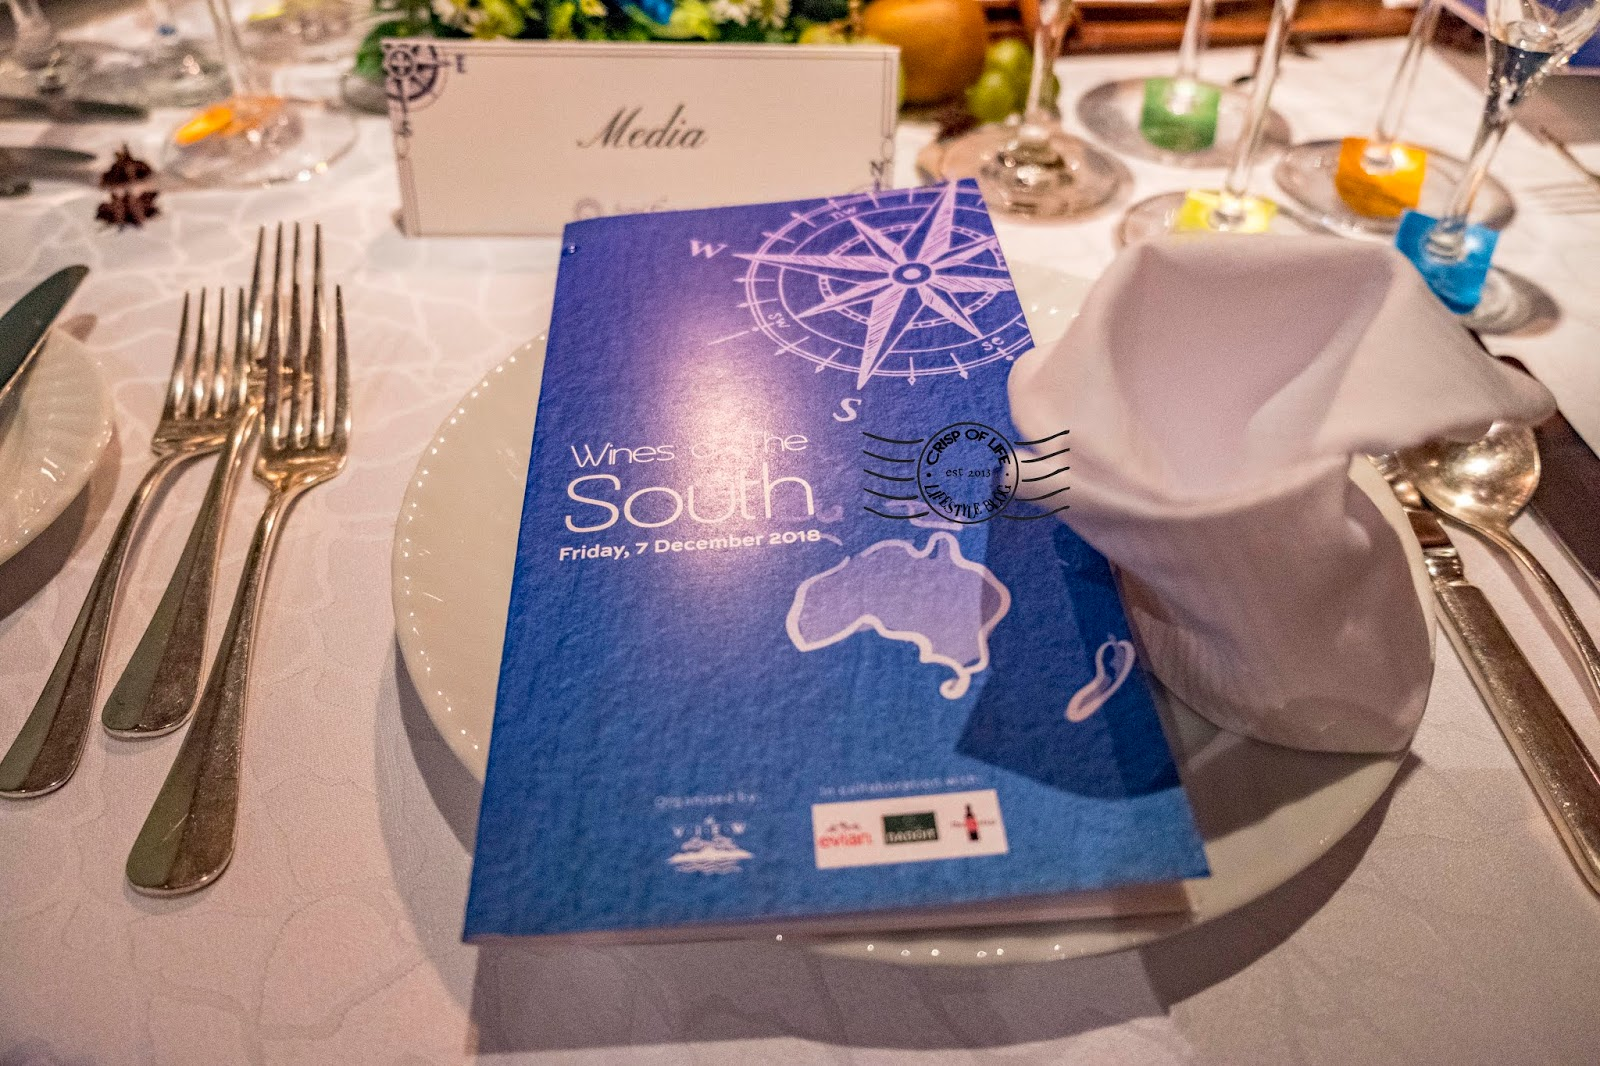 Wines of The South Wine Dinner @ The View, Hotel Equatorial, Penang